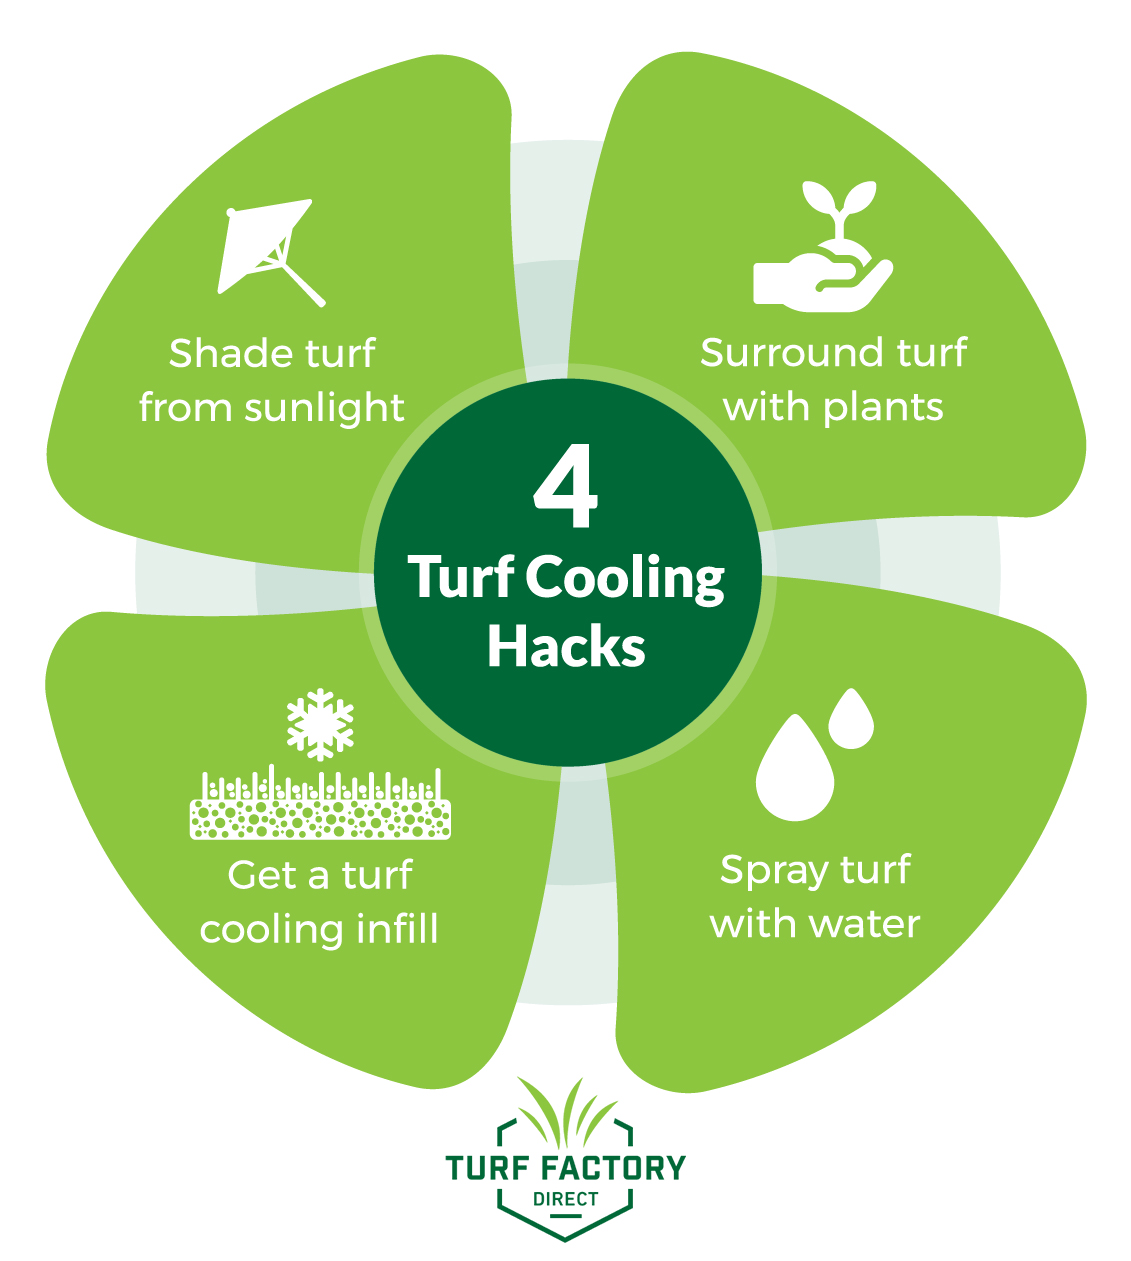 Turf Factory Direct 4 Turf Cooling Hacks How to Cool Turf Down